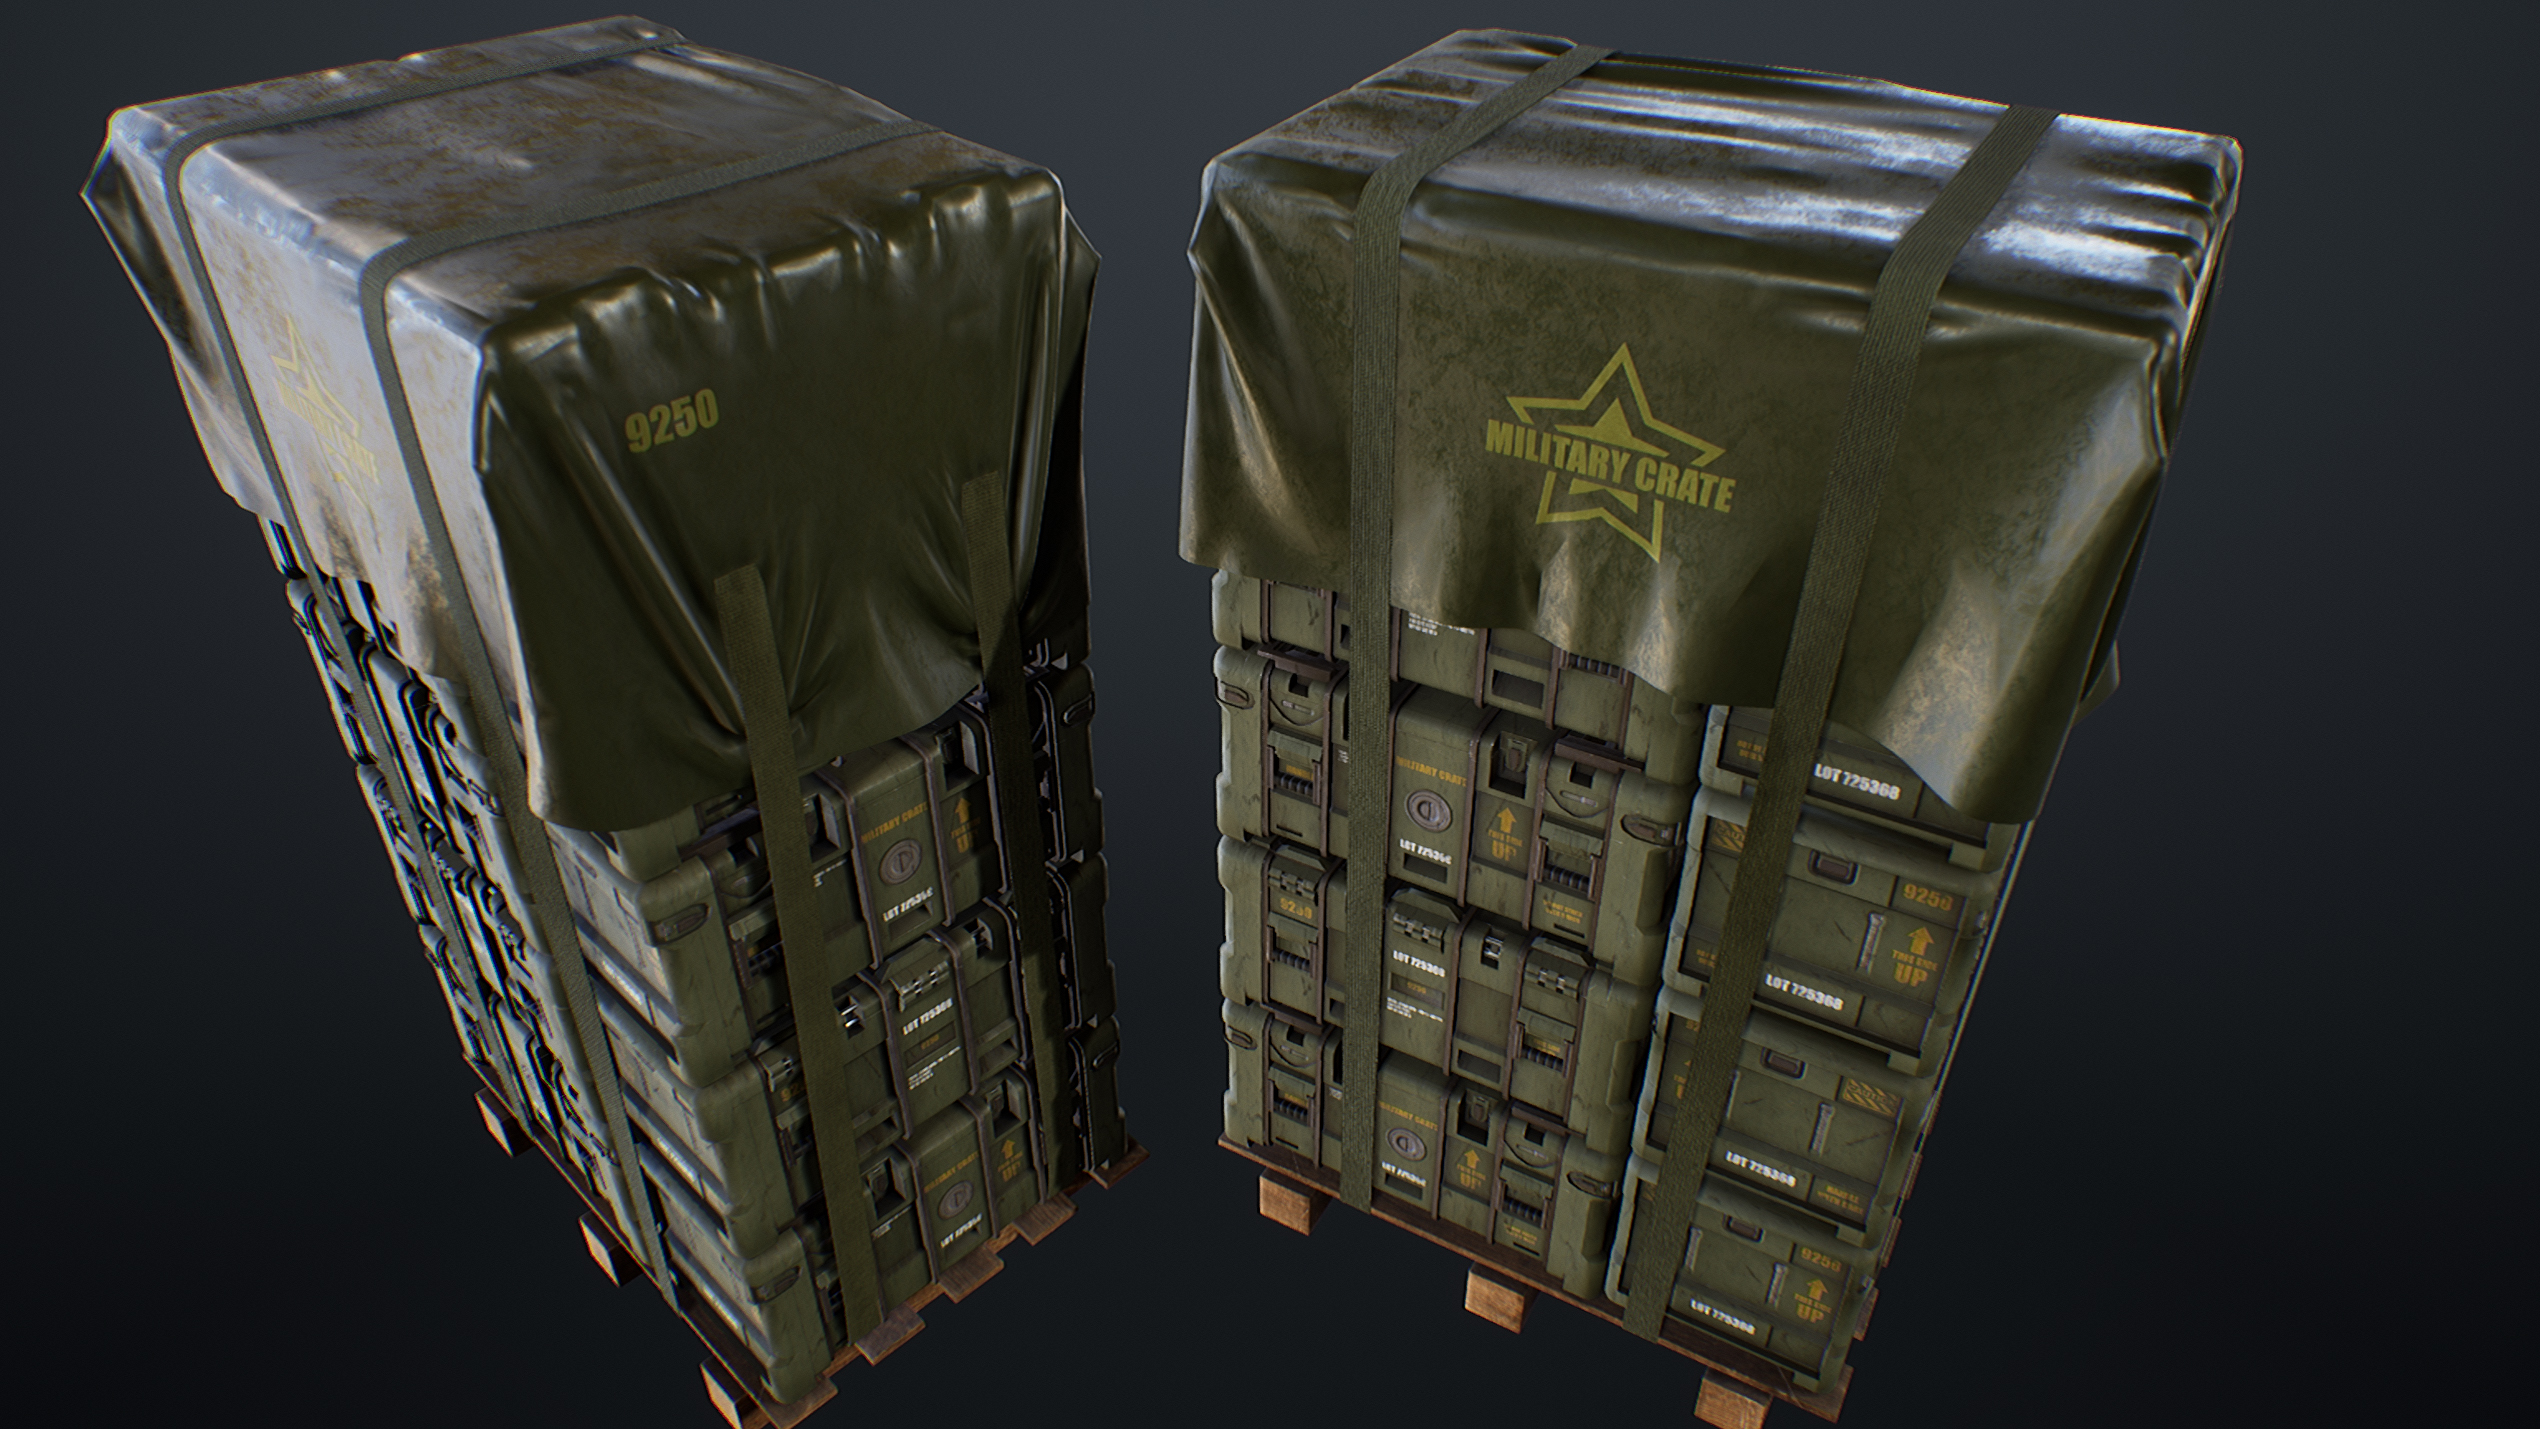 UE4 screenshot back top view of the military crates scene